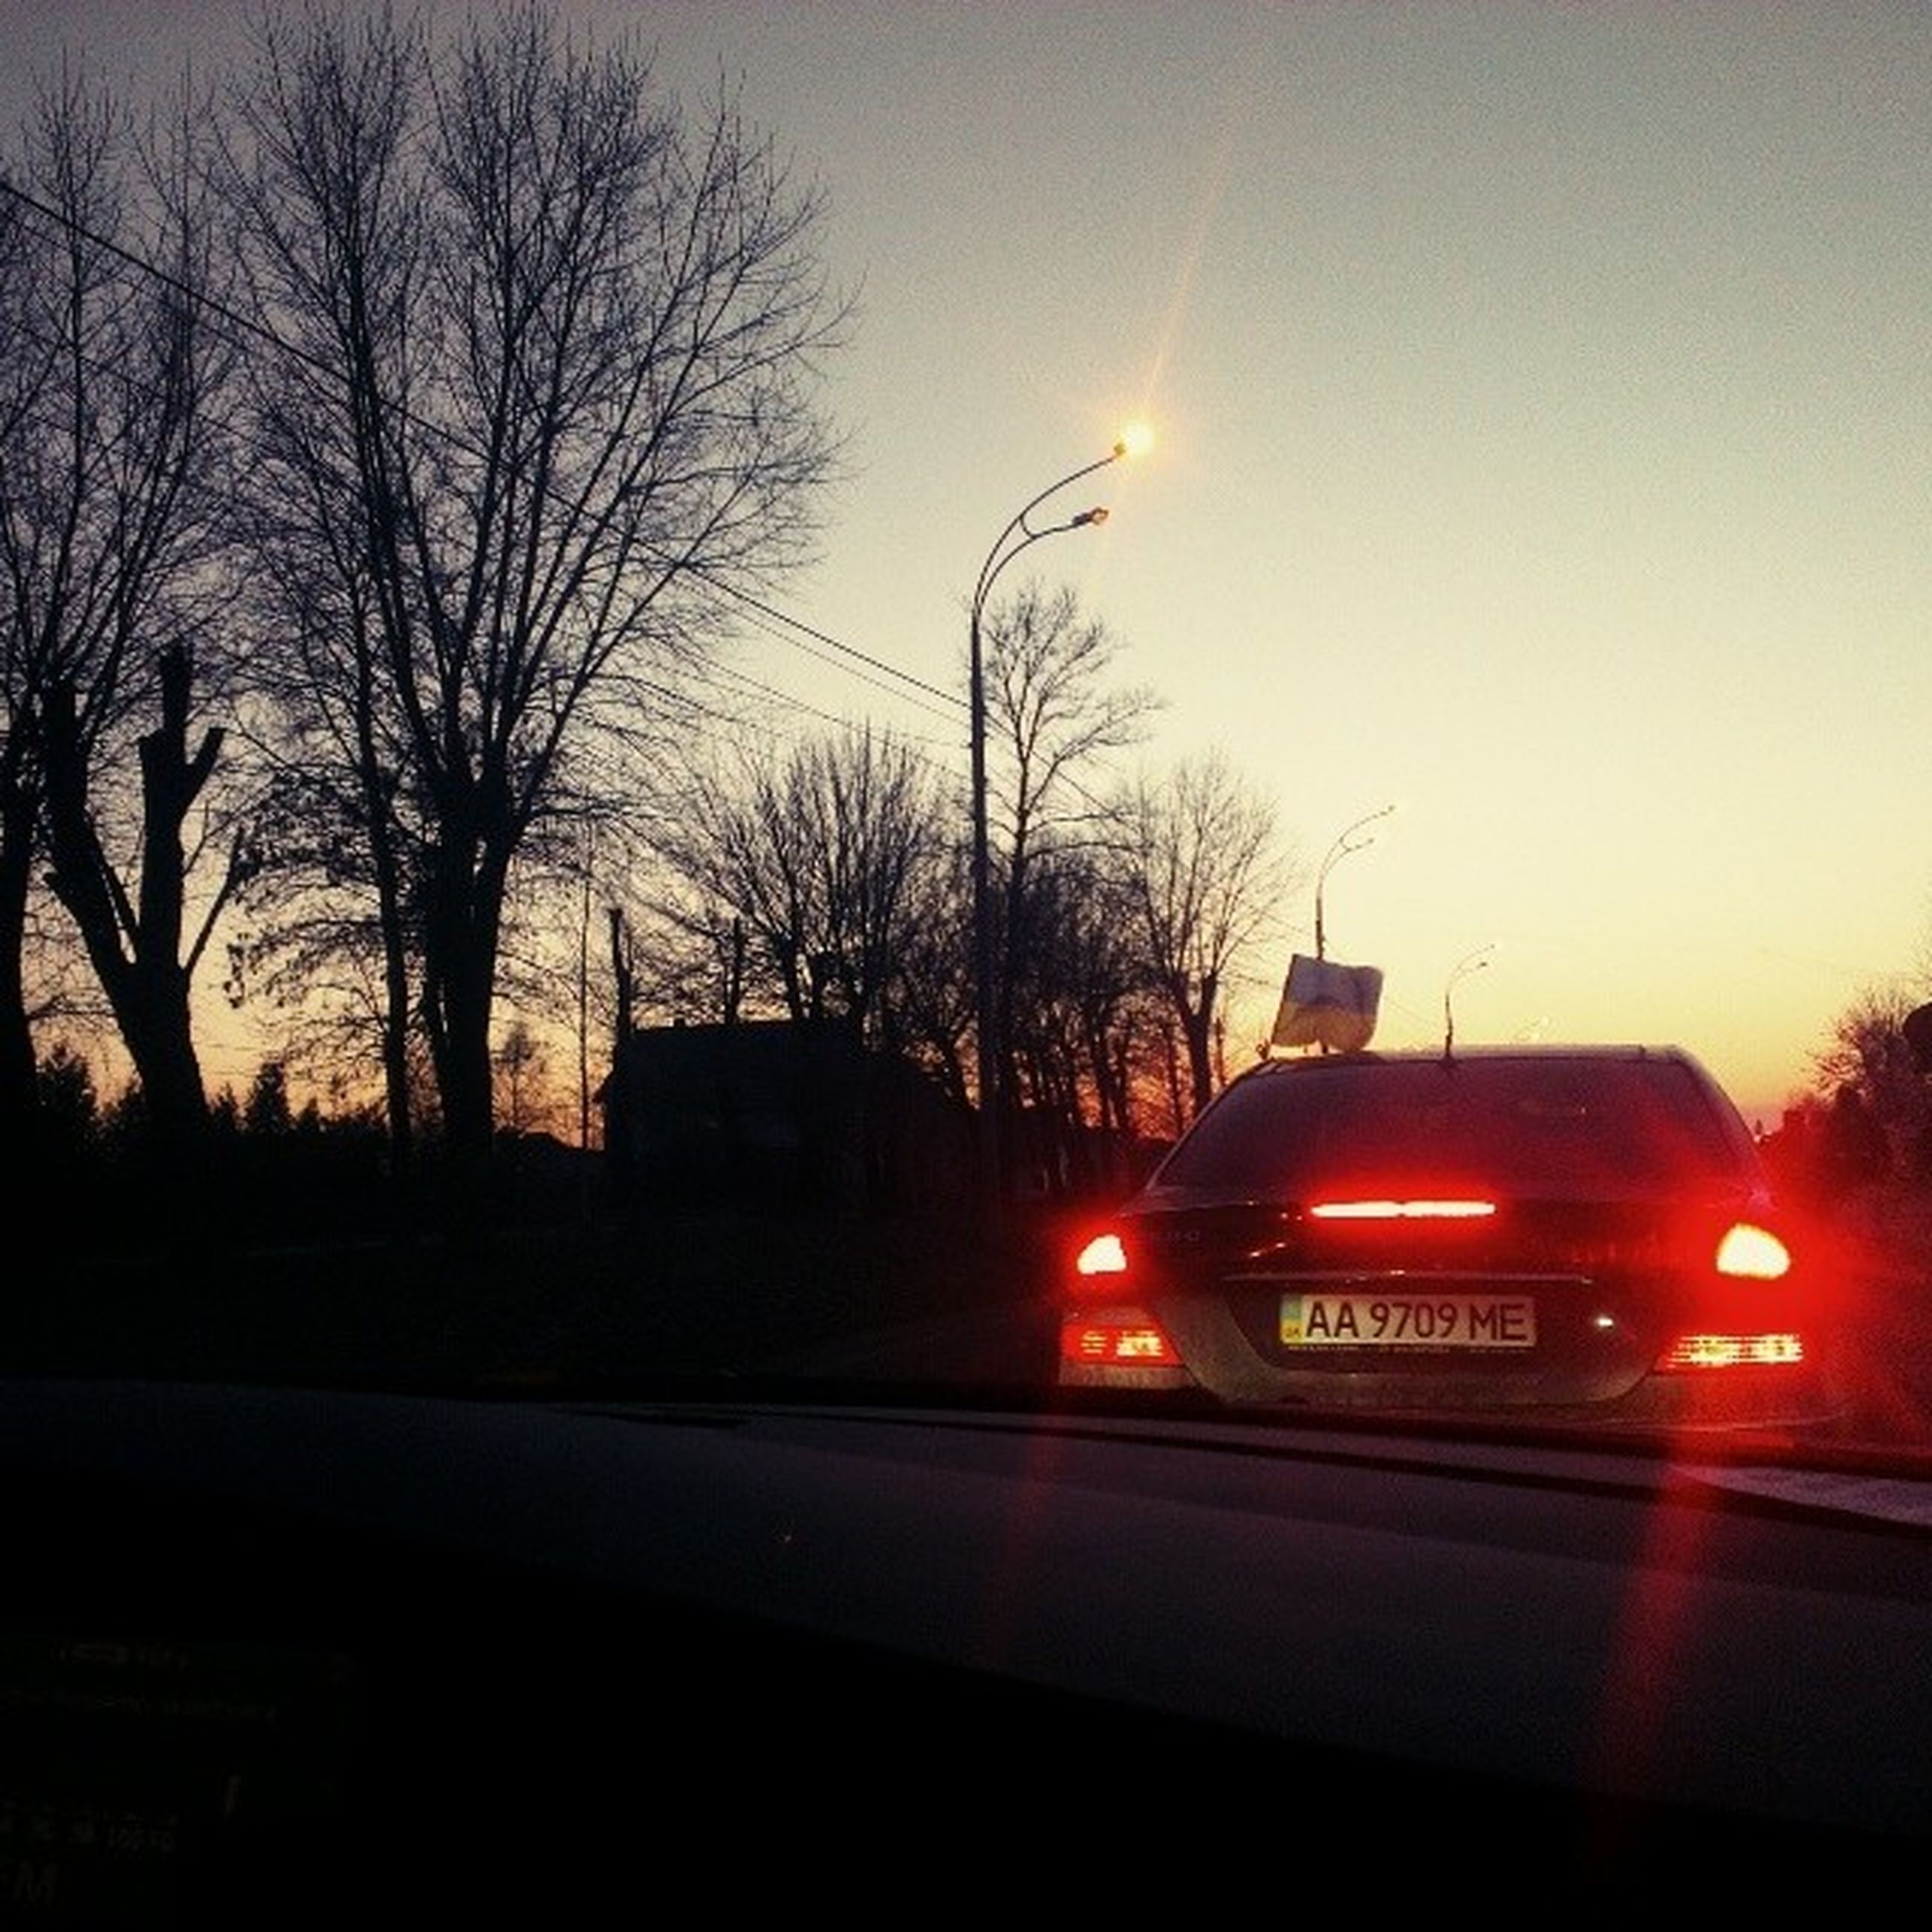 transportation, tree, car, road, bare tree, silhouette, land vehicle, sunset, illuminated, street, mode of transport, sky, night, road marking, no people, the way forward, clear sky, outdoors, lens flare, windshield